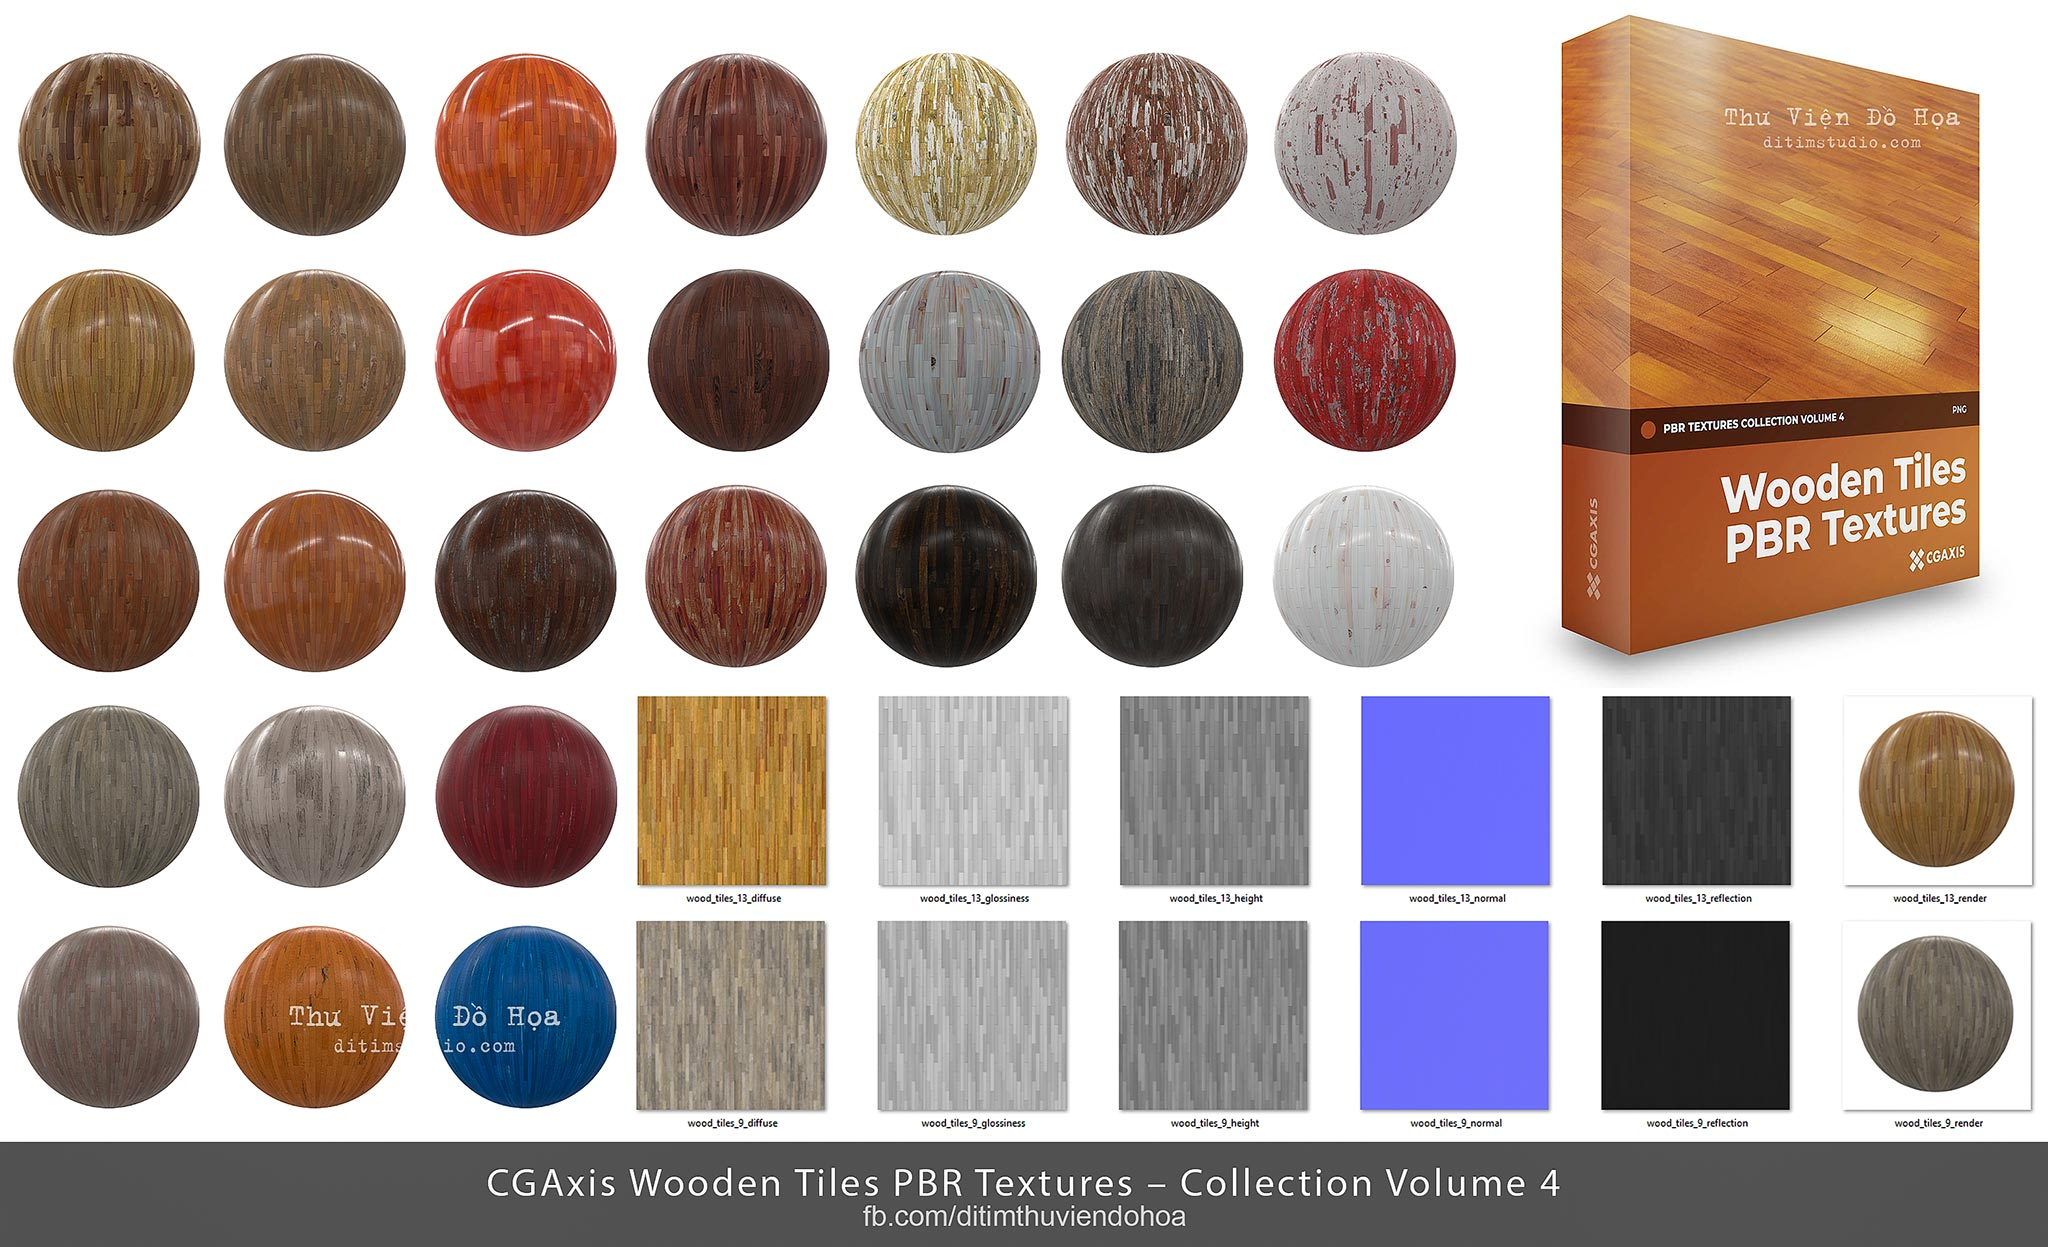 [ Textures ] CGAxis Wooden Tiles PBR Textures – Collection Volume 4